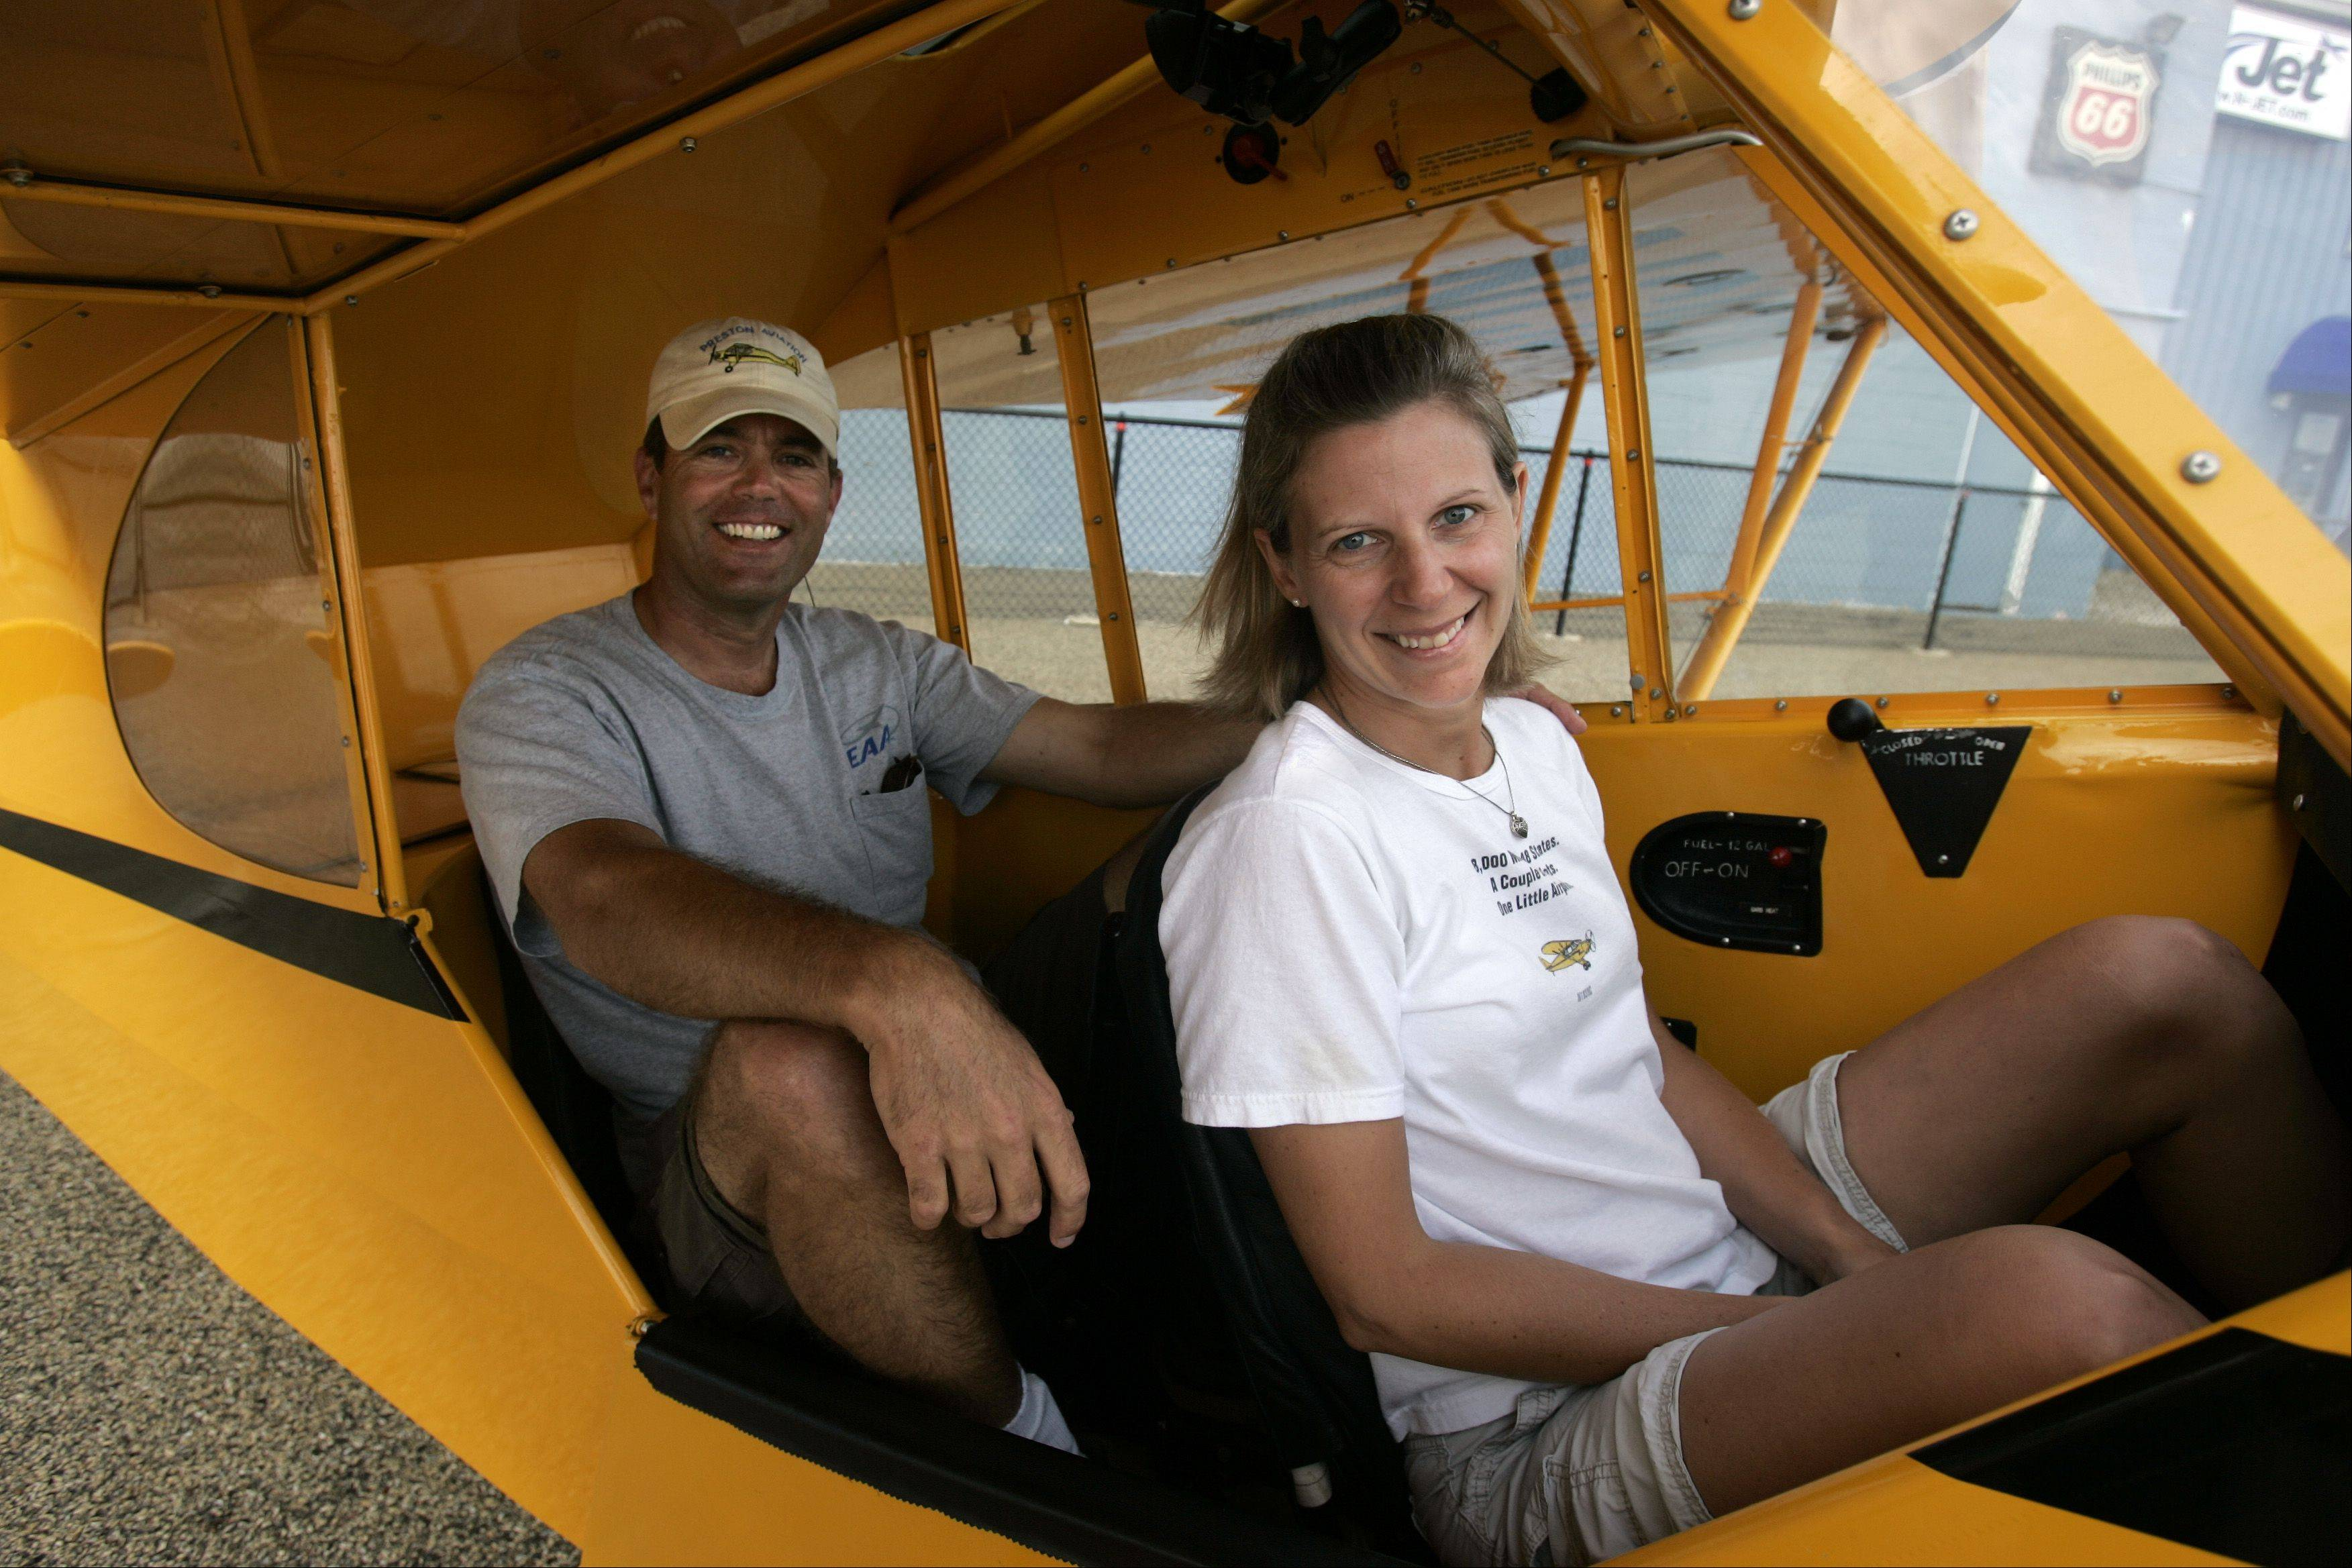 Former Island Lake resident Dana Holladay and his wife, Meredith Tcherniavsky, both flight instructors, live in Maryland and are flying their 1938 Piper J-3 Cub on a mission to touch down in 48 states by Labor Day.